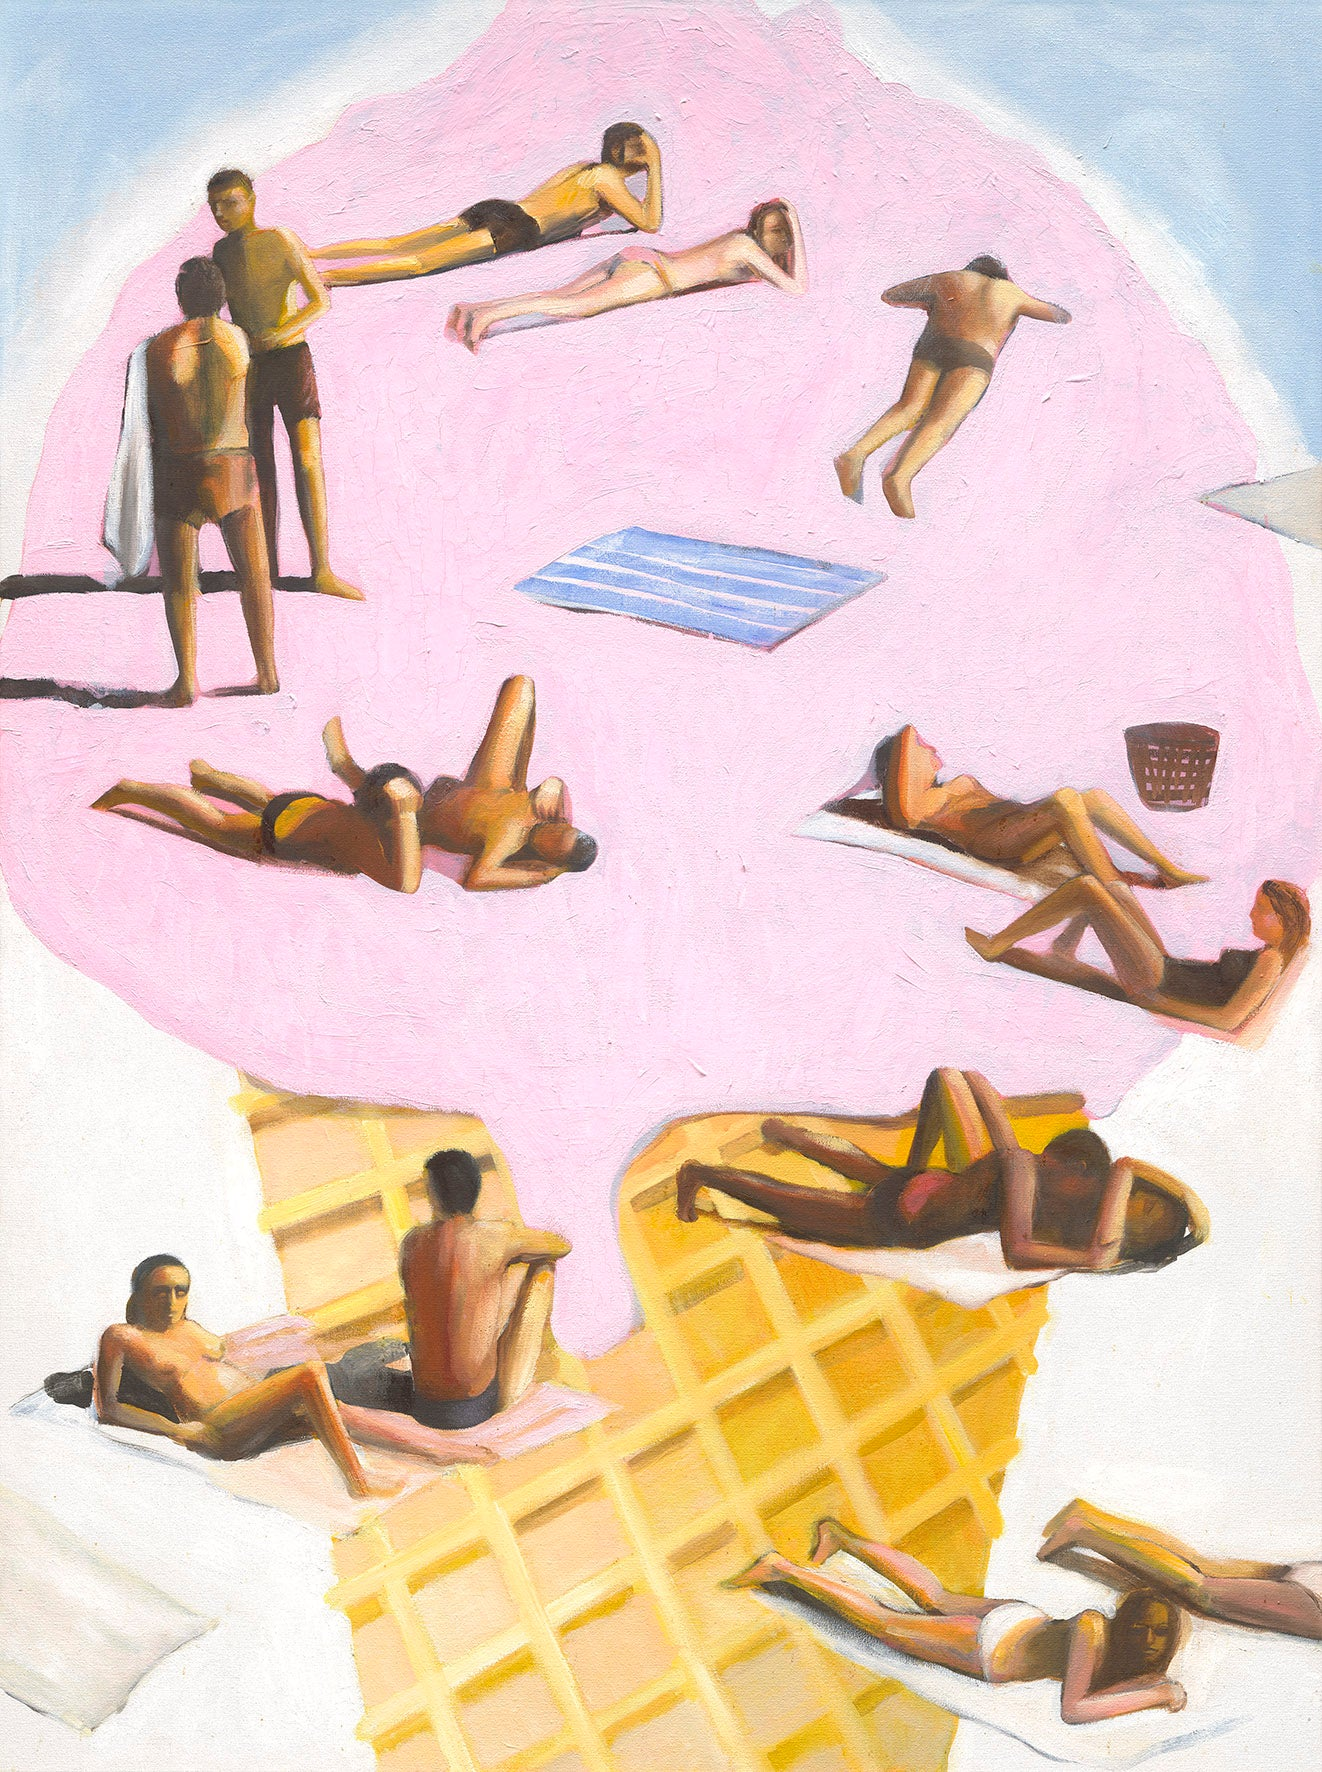 Mitchell English, Palm Beach Gelato, Limited edition fine art print, Australian artist, Surf Art, decor, interior design